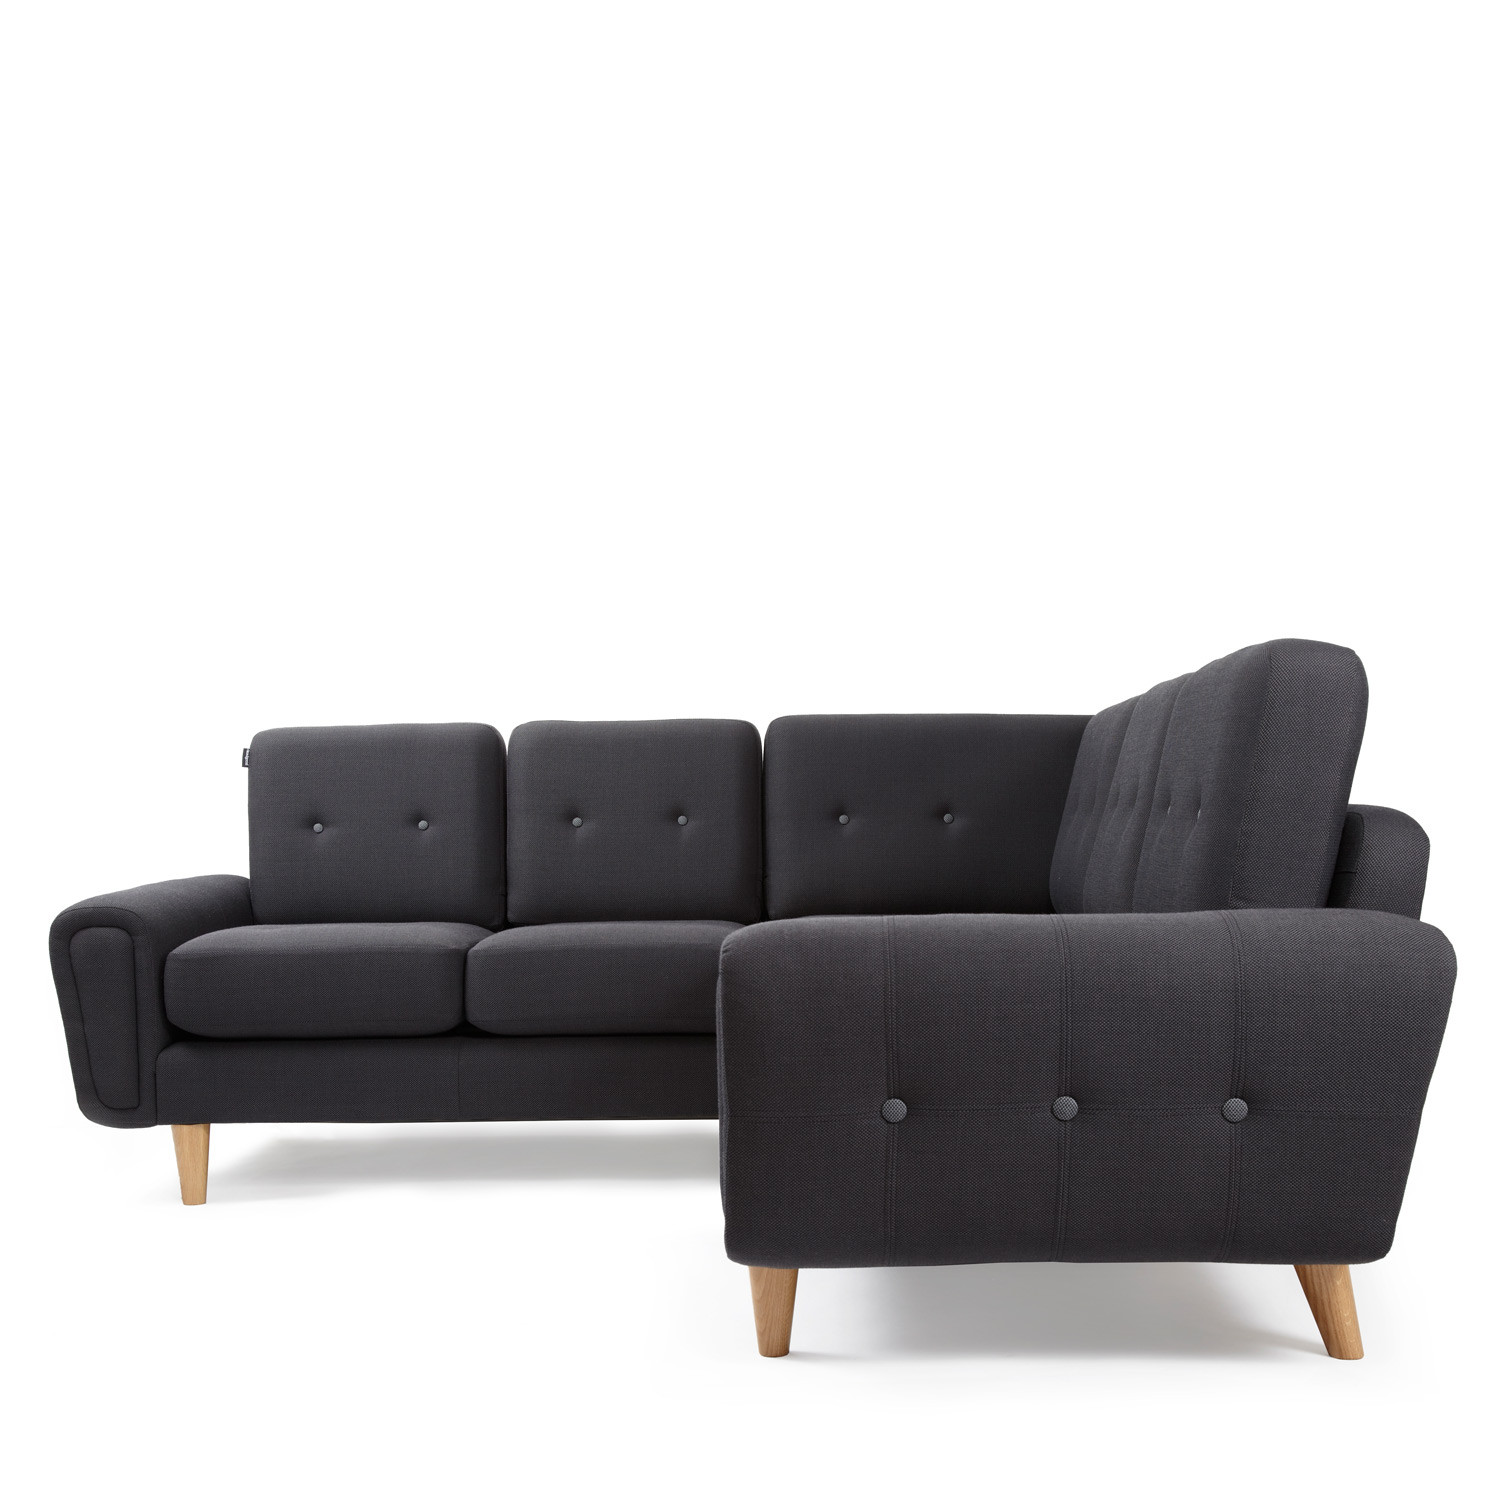 Modular Furniture Sofa: Modern Corner Sofas